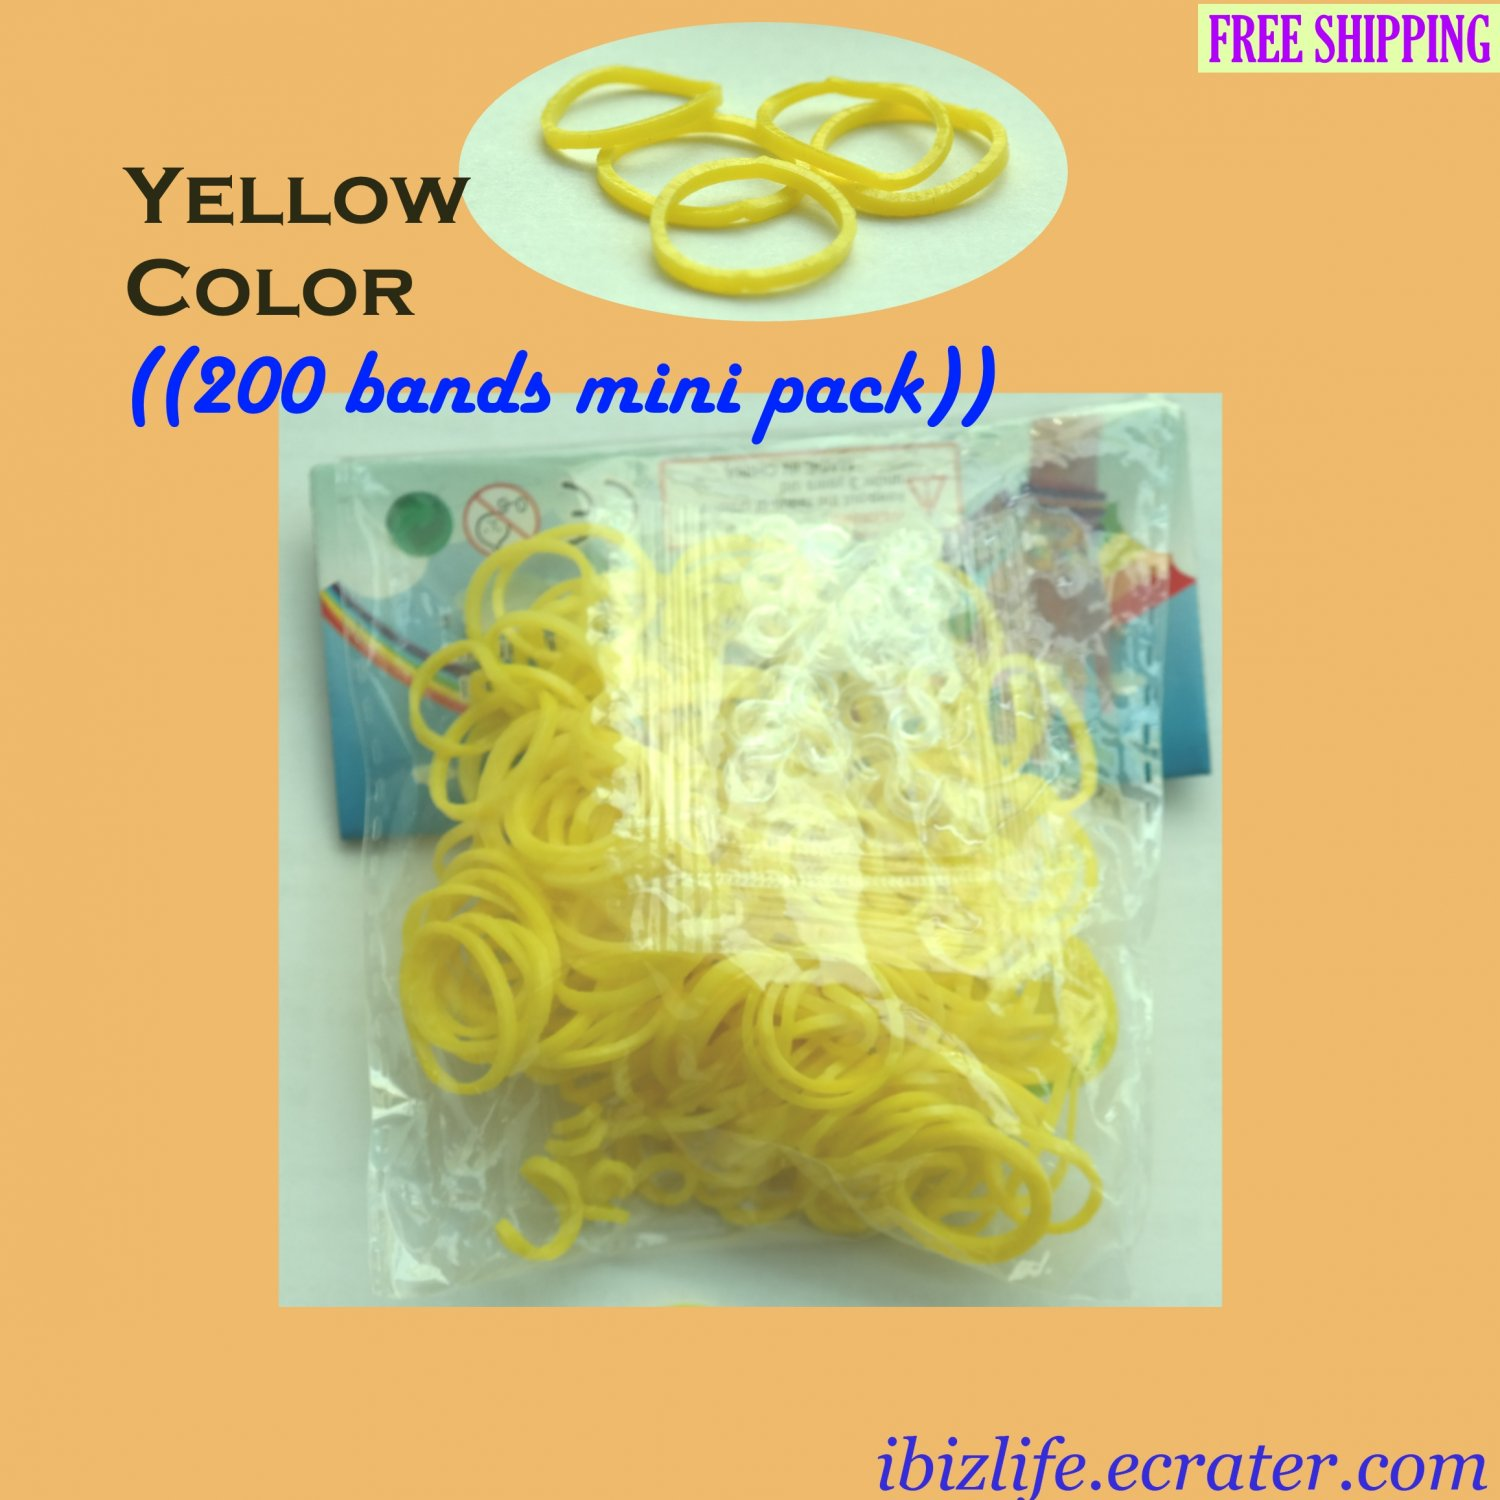 RAINBOW LOOM RUBBER BAND REFILL with 200 bands (Yellow color) & 12 Clips (RL44)